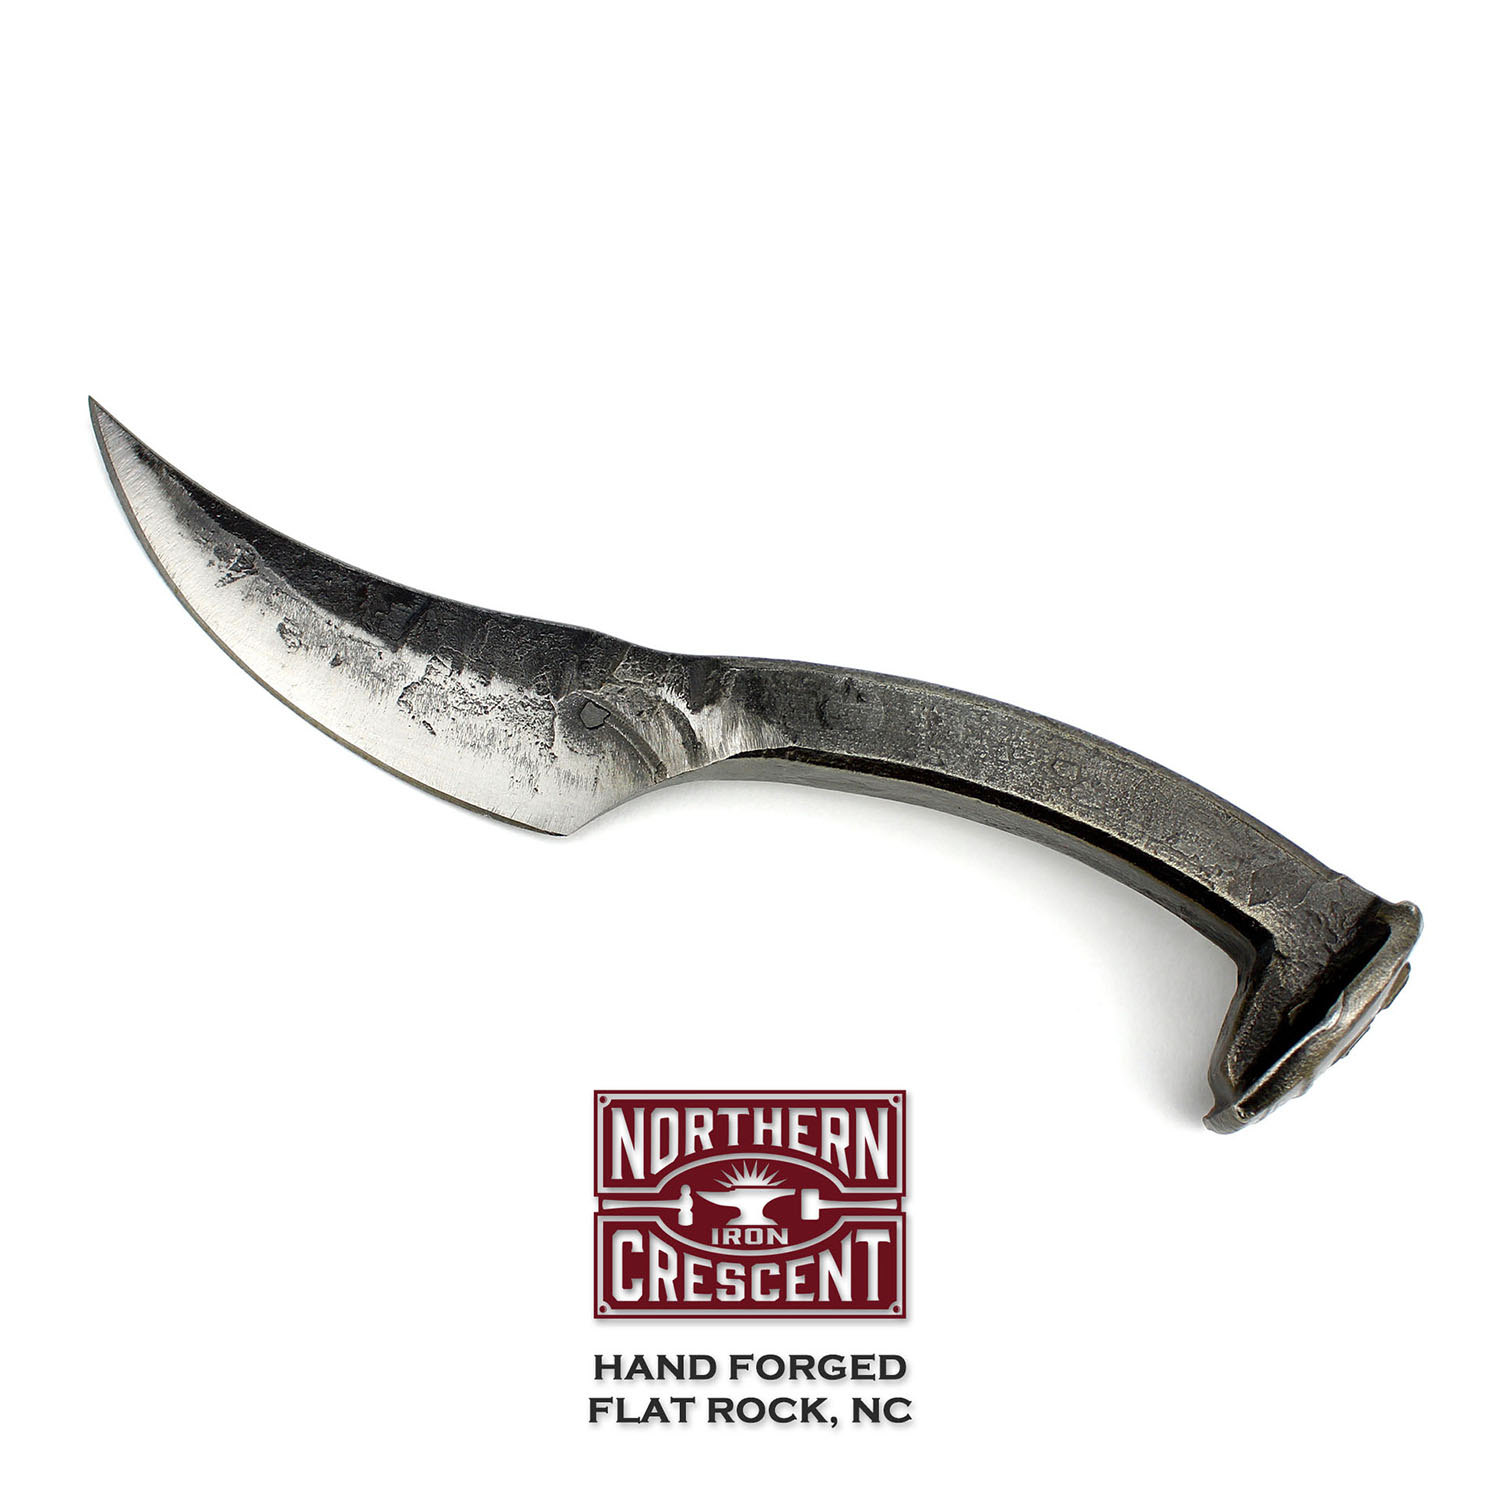 Hand forged knife.